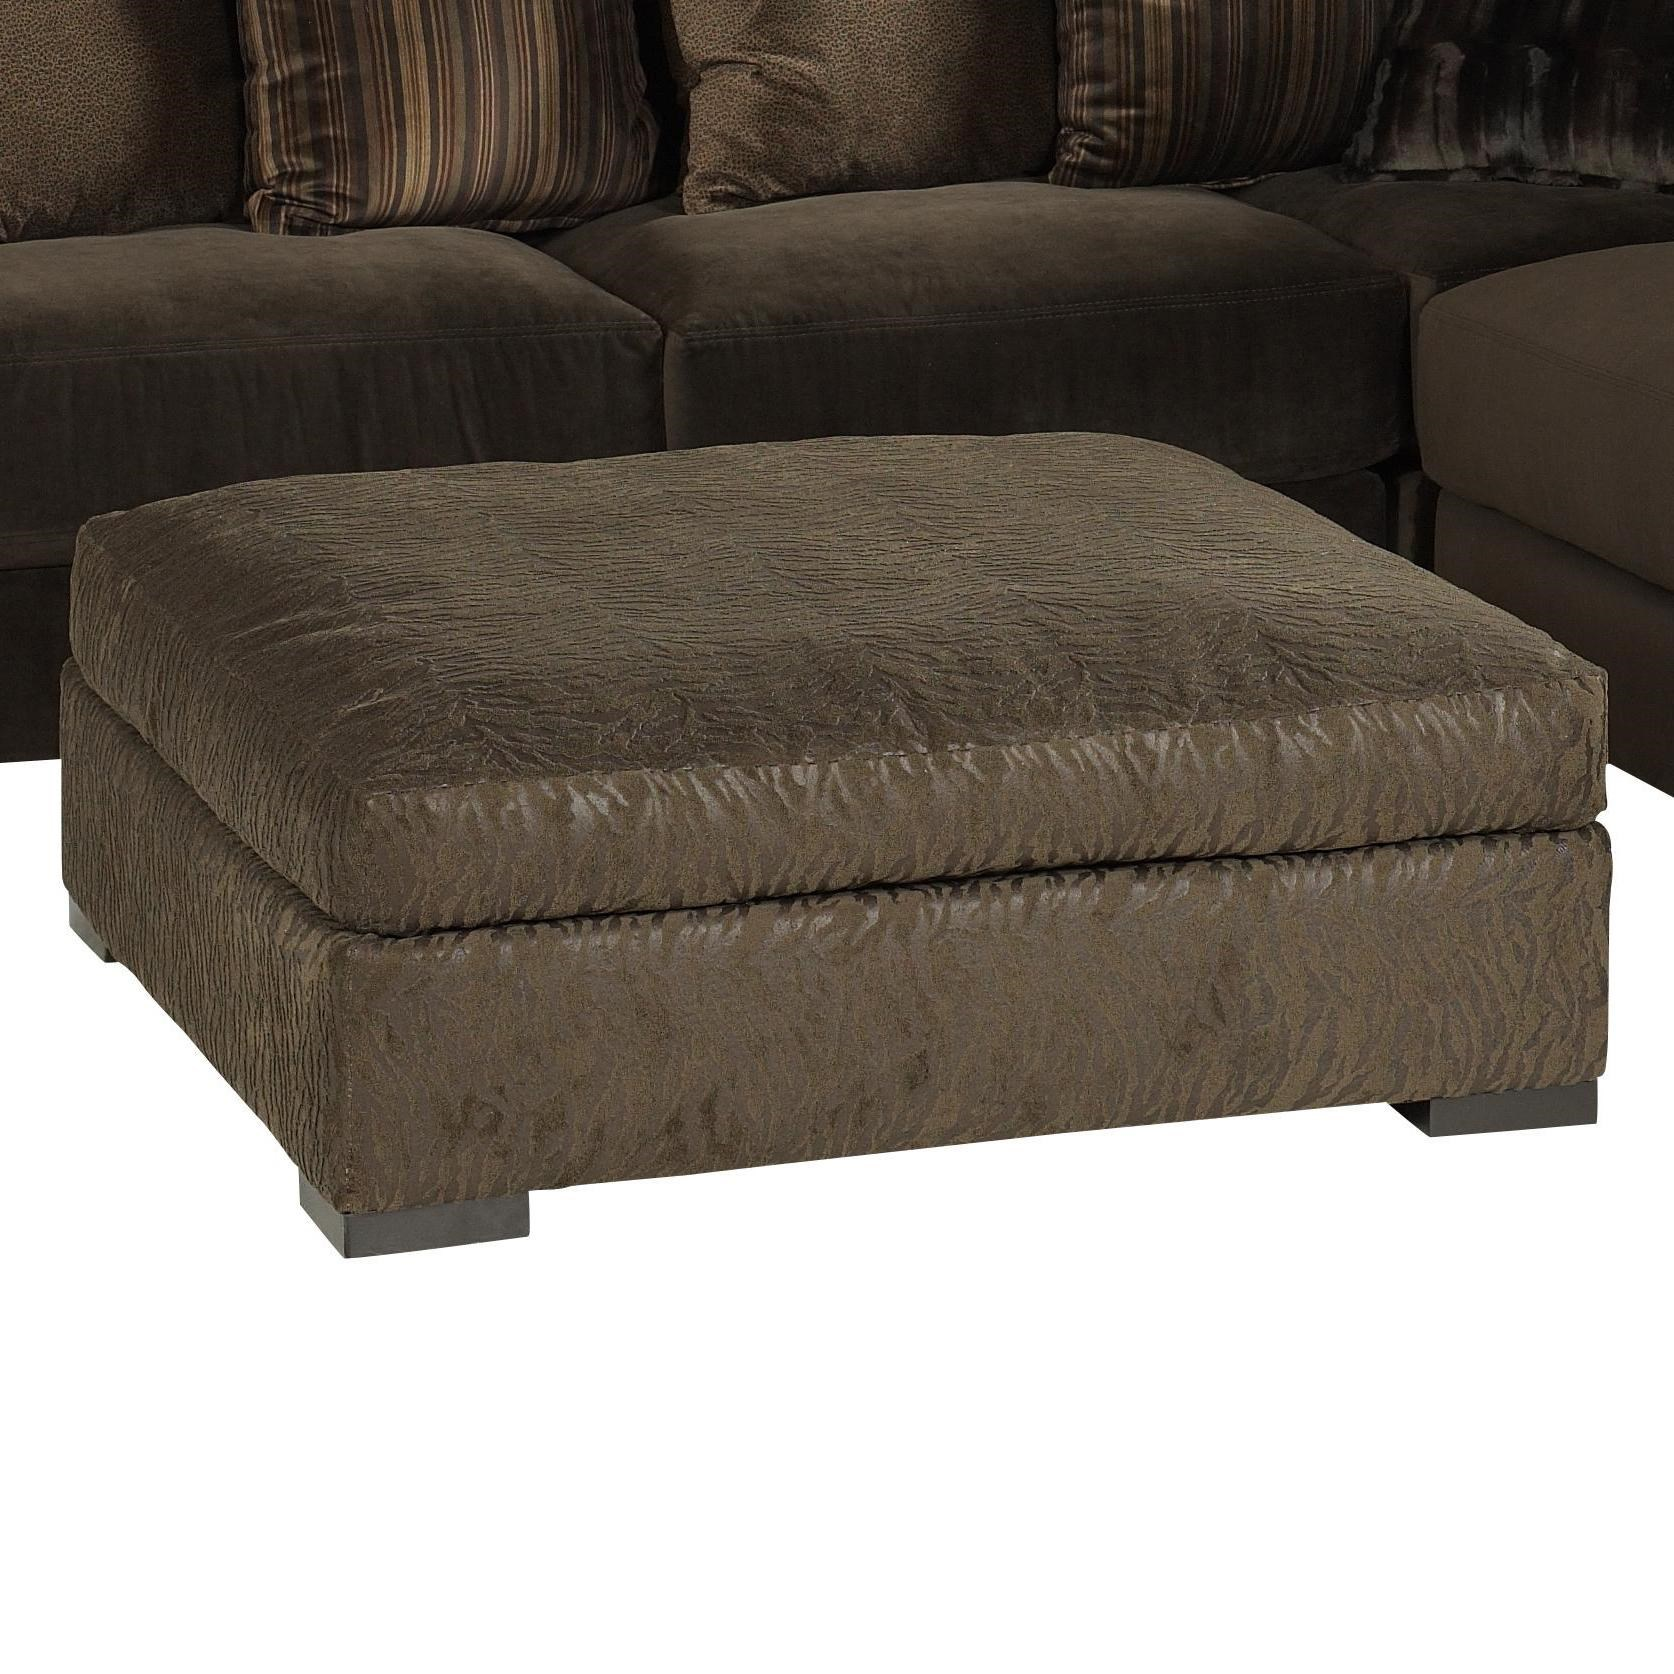 Ottoman Uses Jonathan Louis Carlin Rectangular Upholstered Ottoman Williams